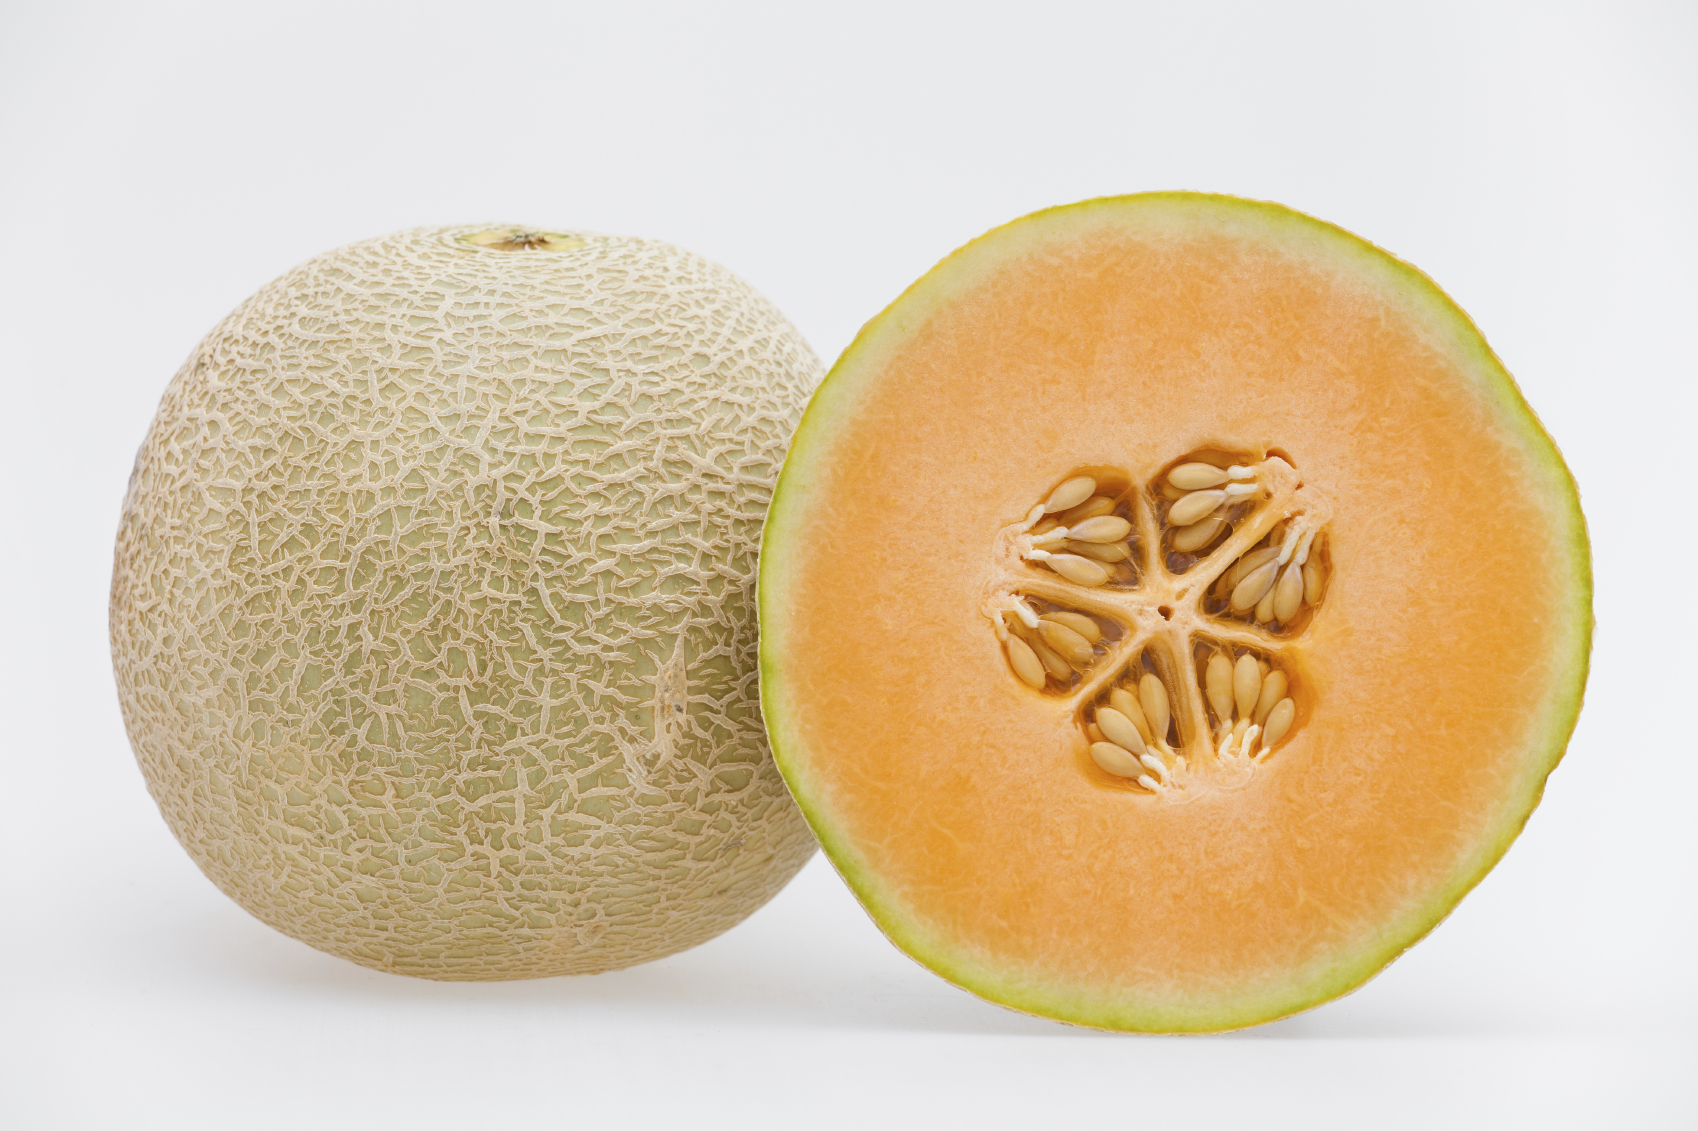 So, you've apparently been cutting cantaloupe all wrong